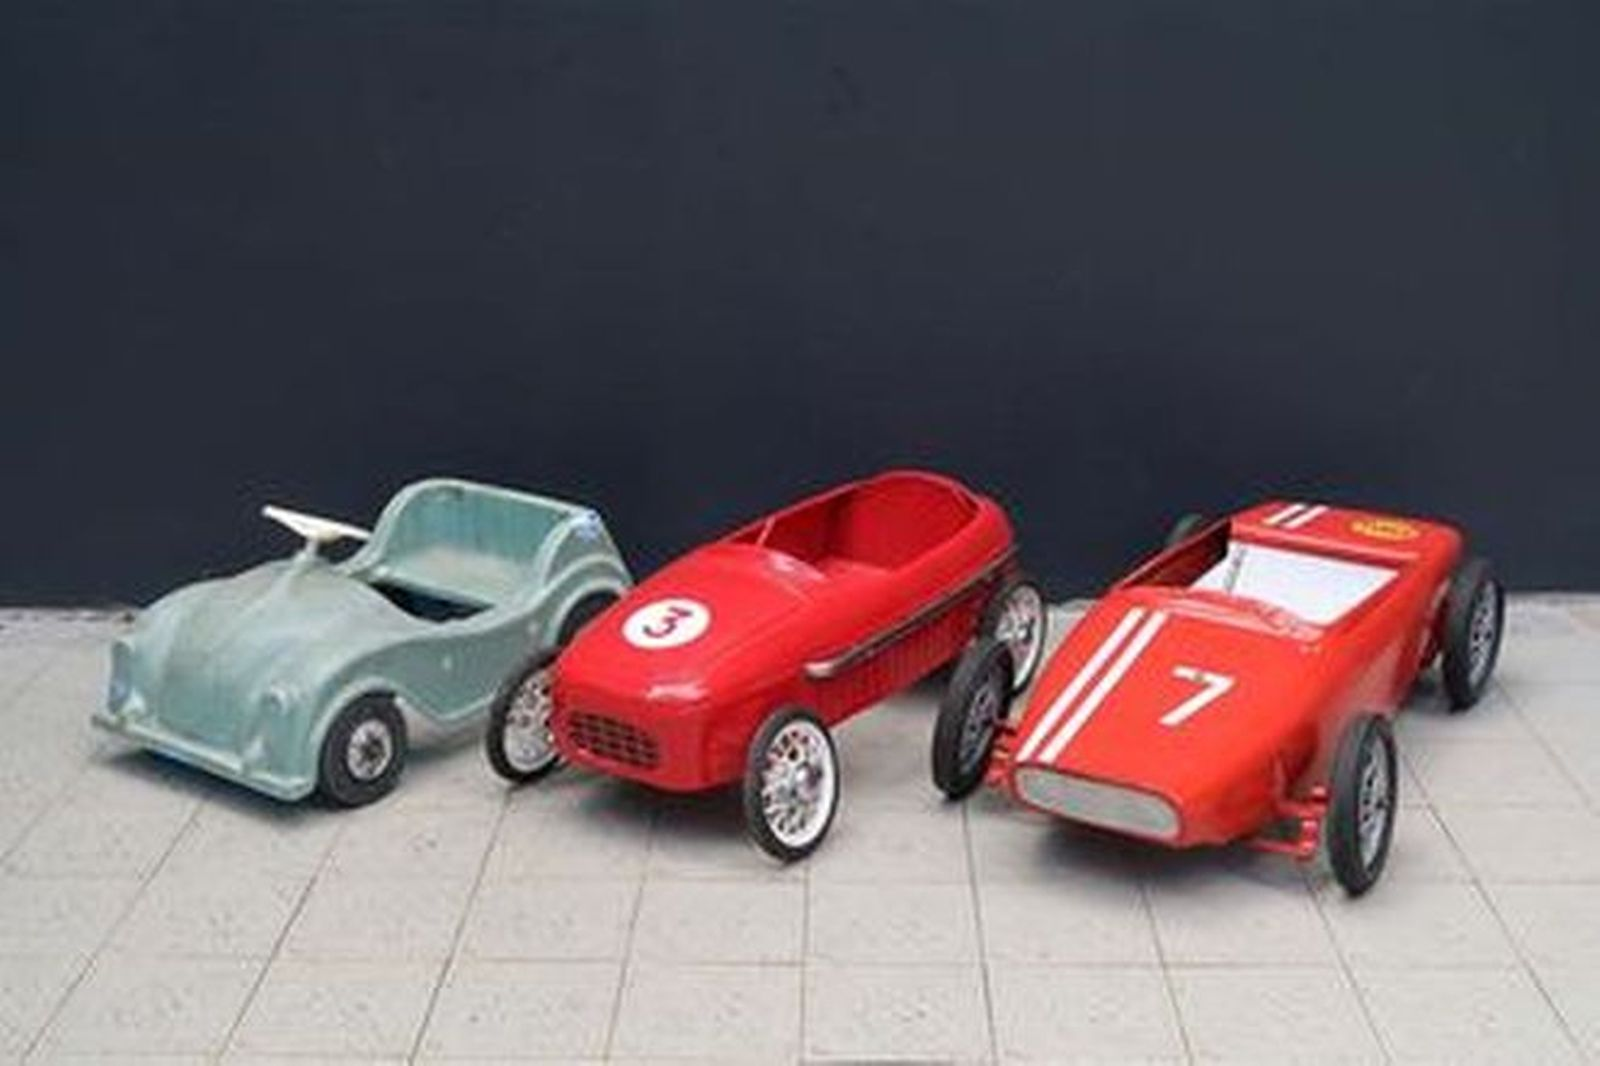 Pedal Cars - 3 x c1960s Ferrari F1 Racing Car & c1970s Ferrari Racing Car & Sharna GB